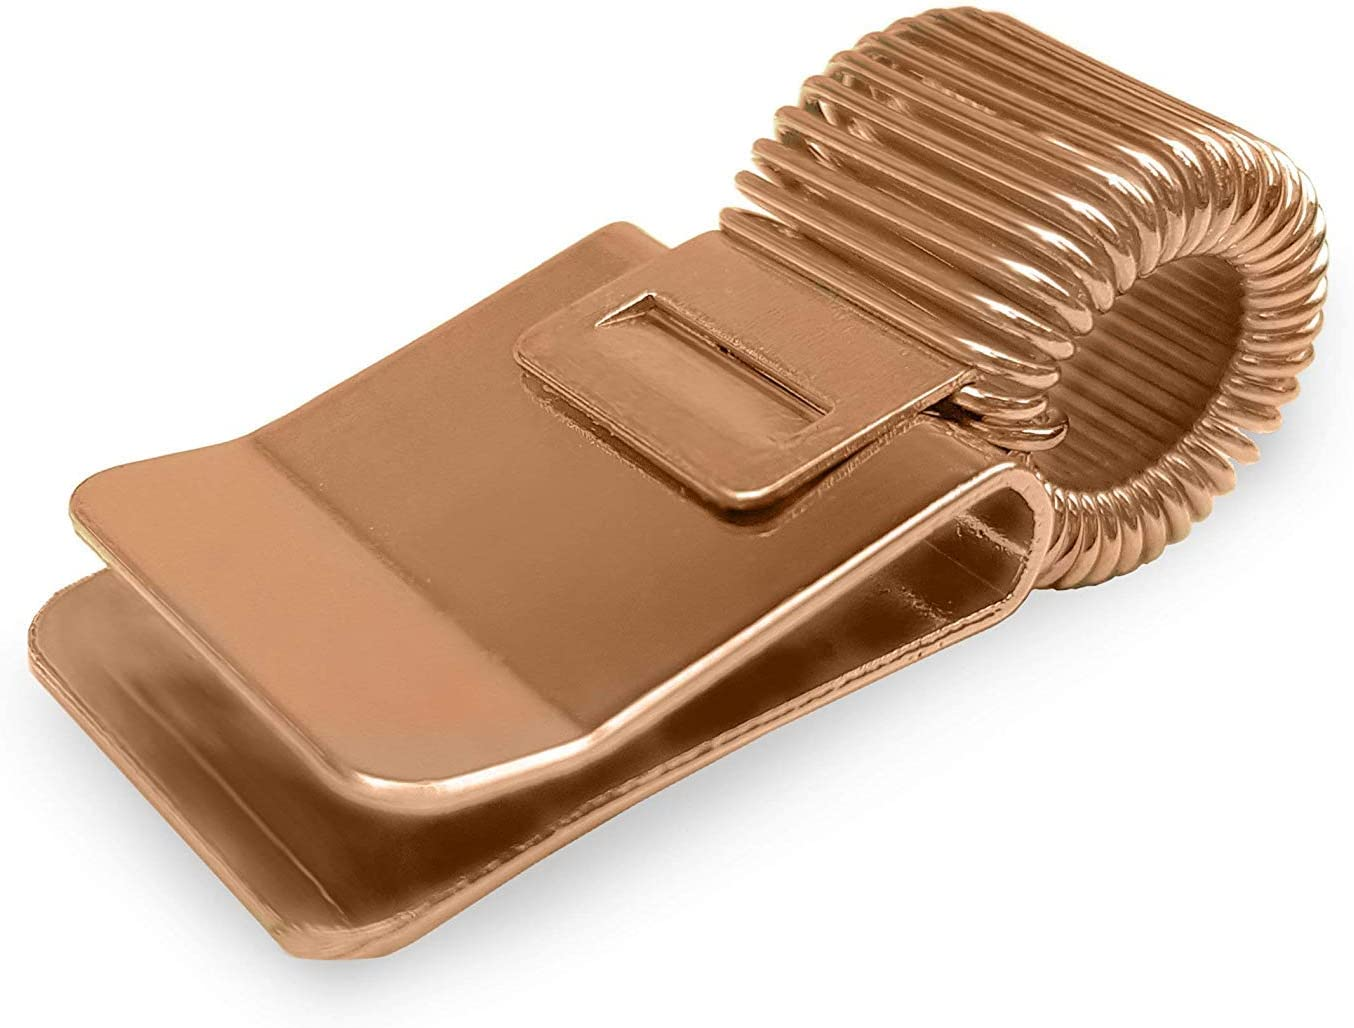 Metal Pen Clip Holder for Notebook/Clipboard/Journal/Diary - Ideal For Doctors/Nurses/Foremans/Office - Single - Rose Gold